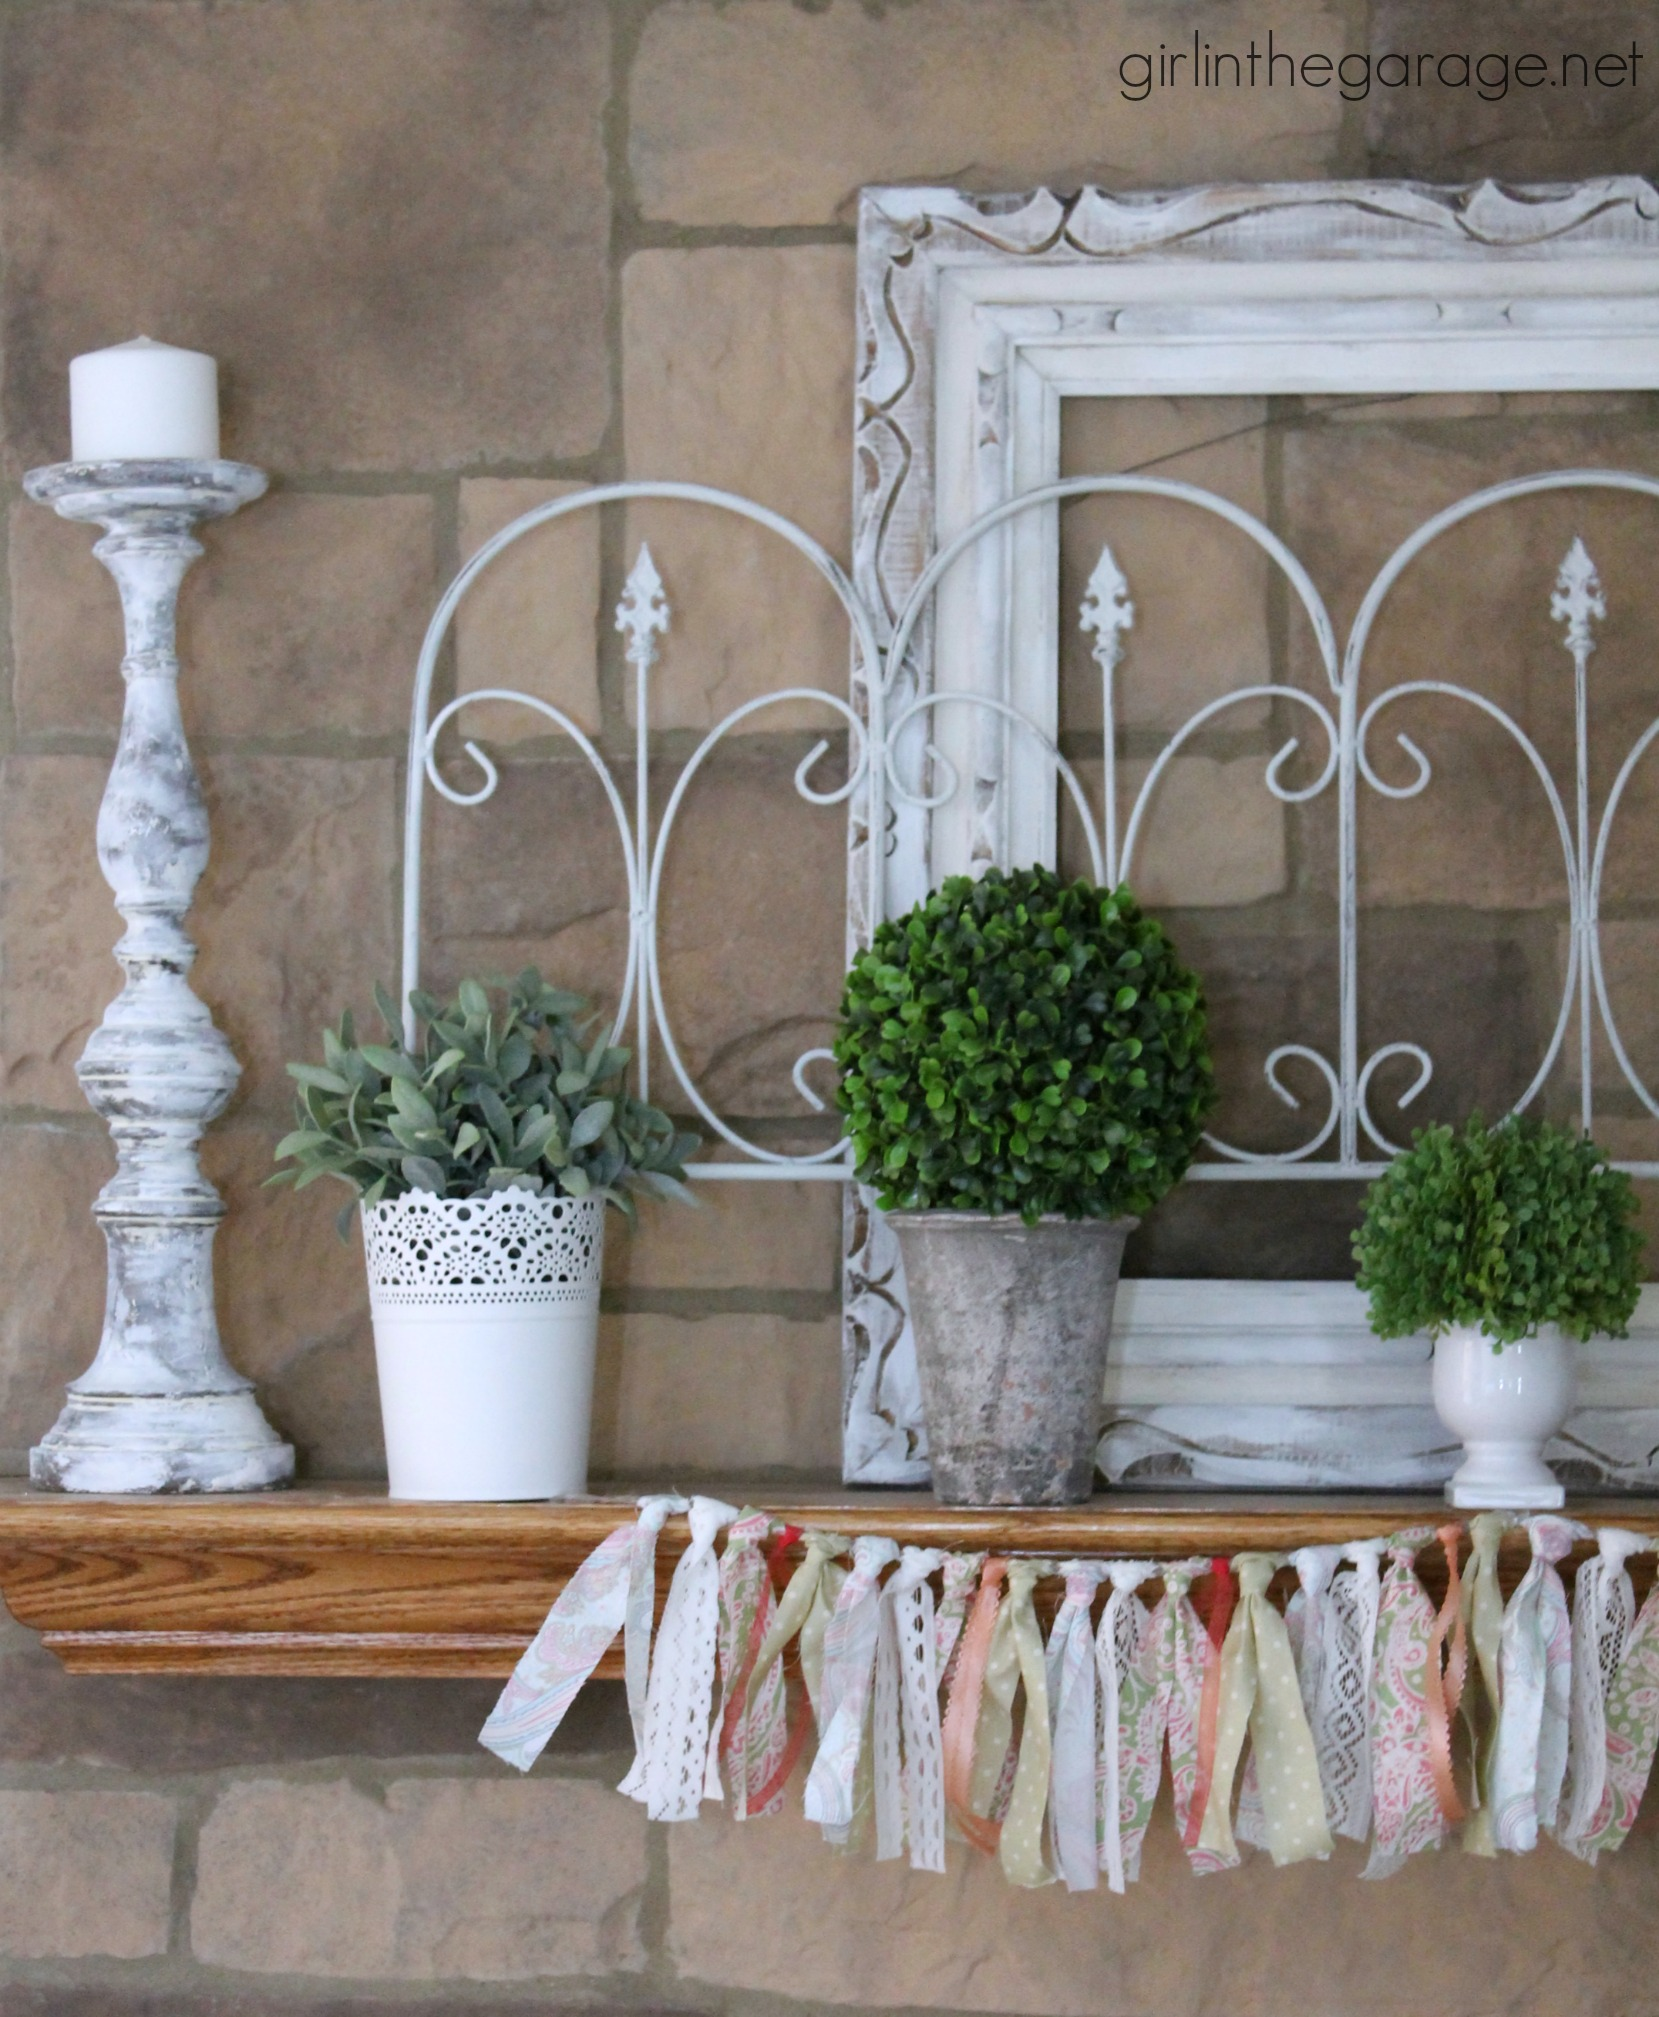 White and Green Spring Mantel | Girl in the Garage®